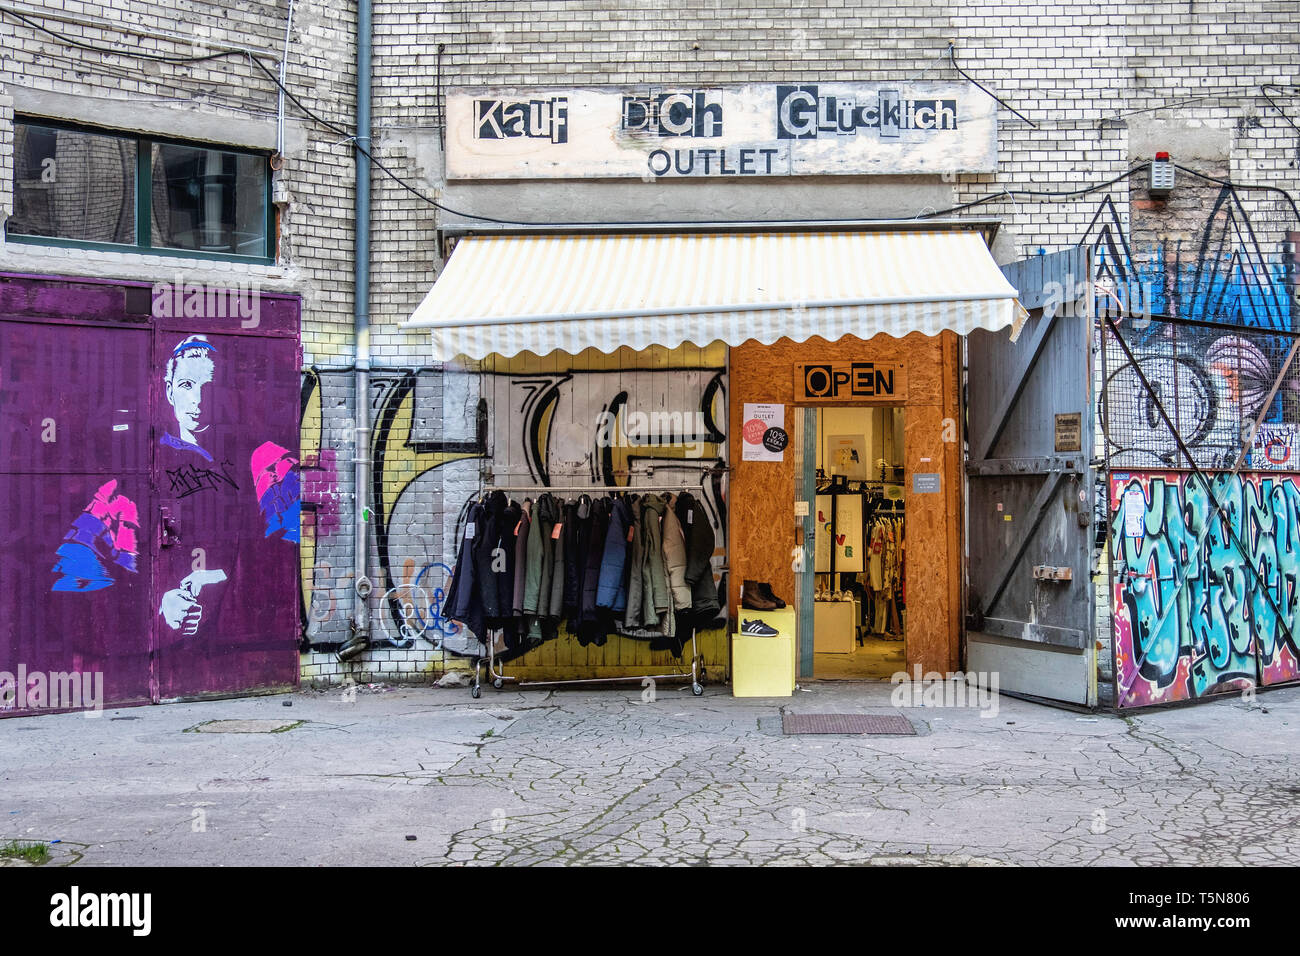 Wedding, Berlin. kauf dich glücklich clothes shop & fashion outlet in  Inner courtyard of dilapidated old industrial building  at Gerichtstrasse 23. Stock Photo